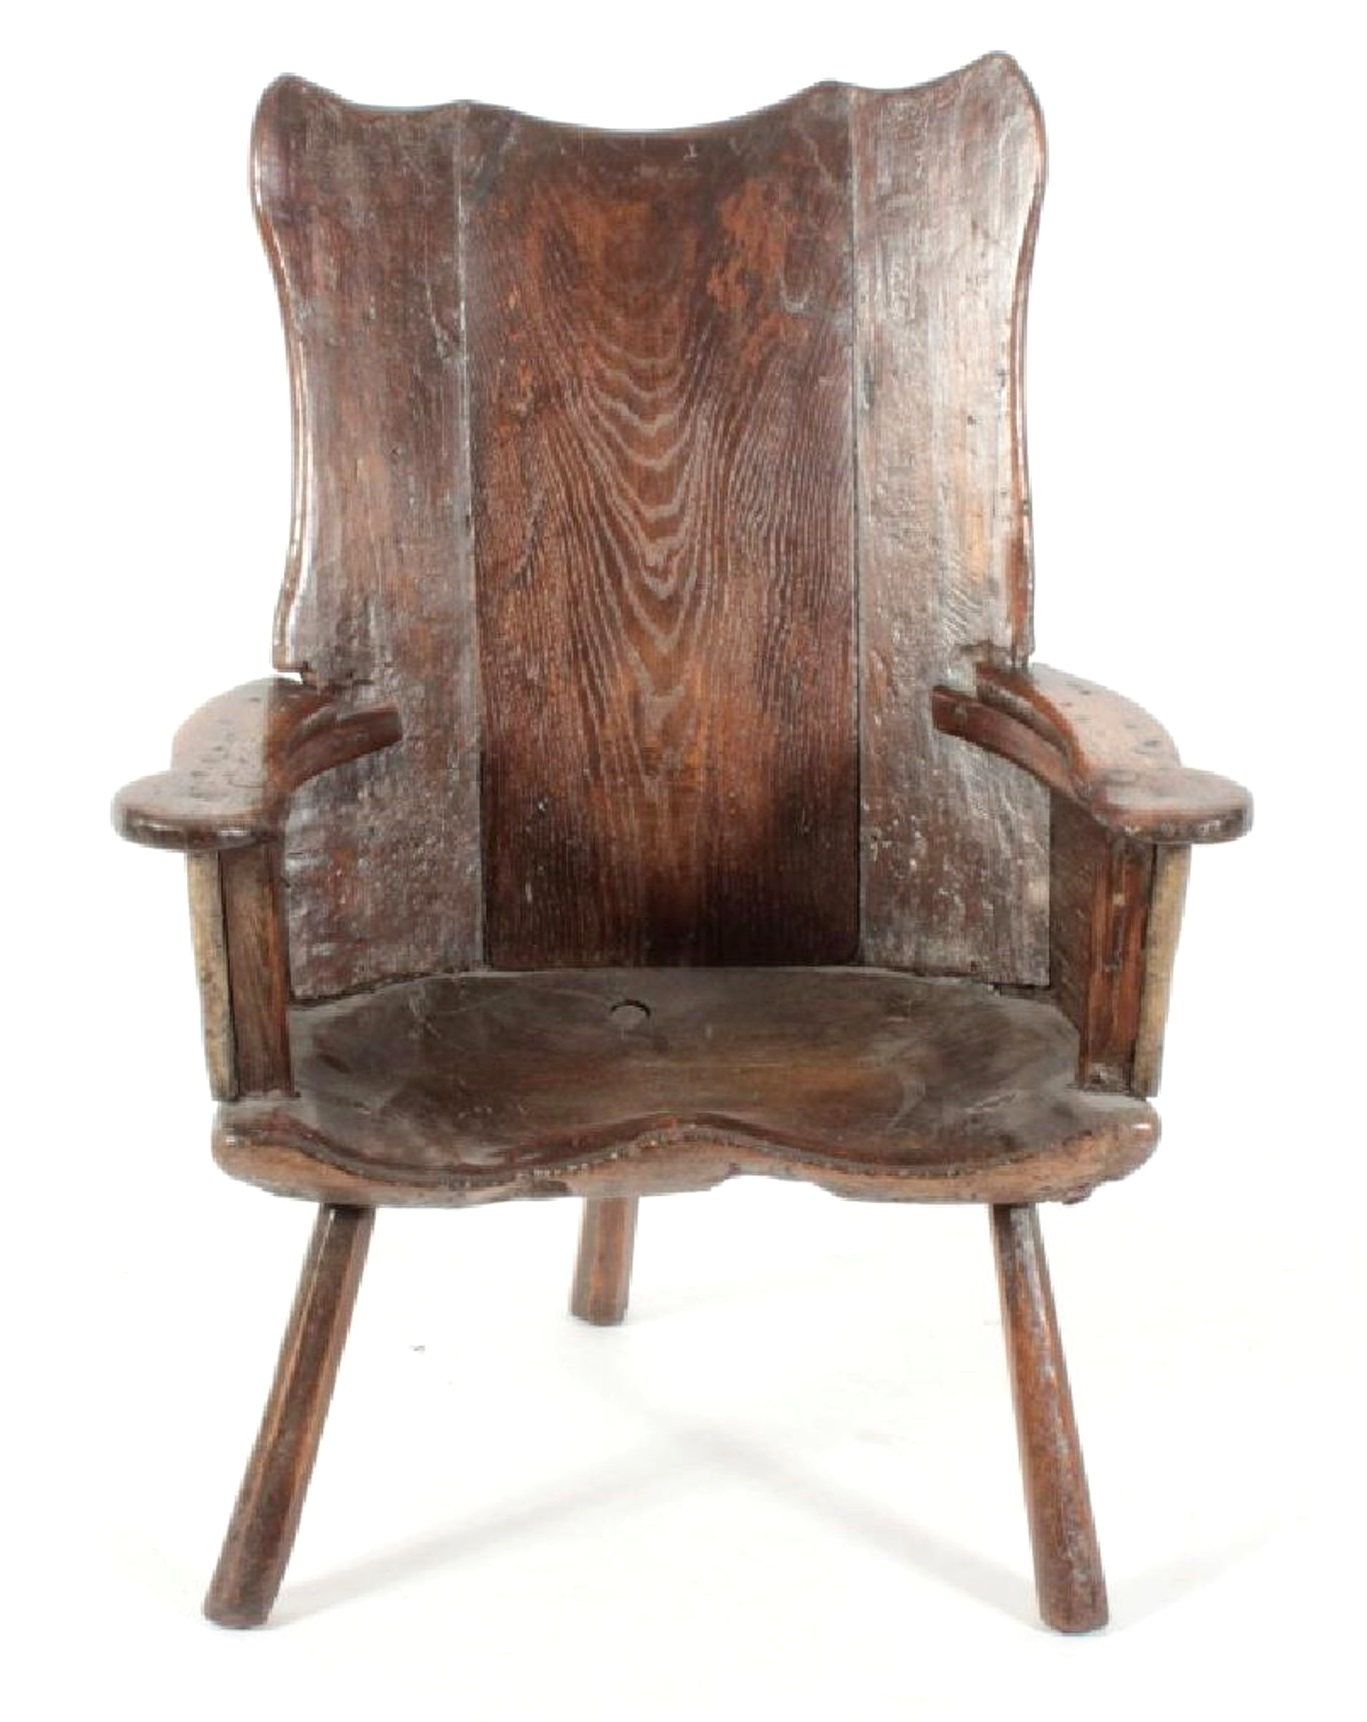 English Oak 3-Legged Primitive Armchair, C. 1600. Sold For $4,125